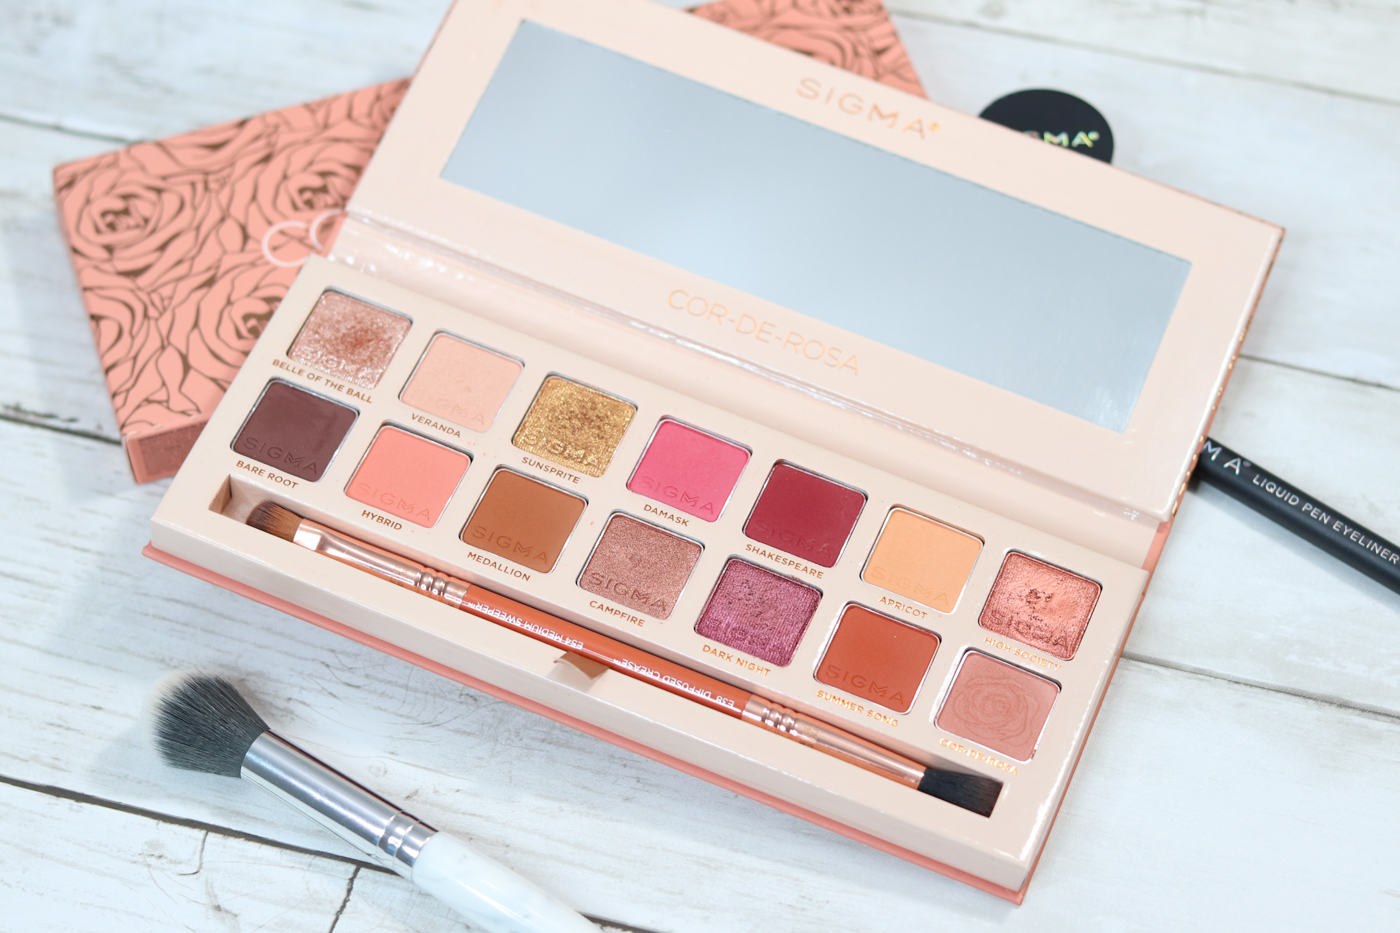 Reviewing SIGMA Cor De Rosa Eyeshadow Palette